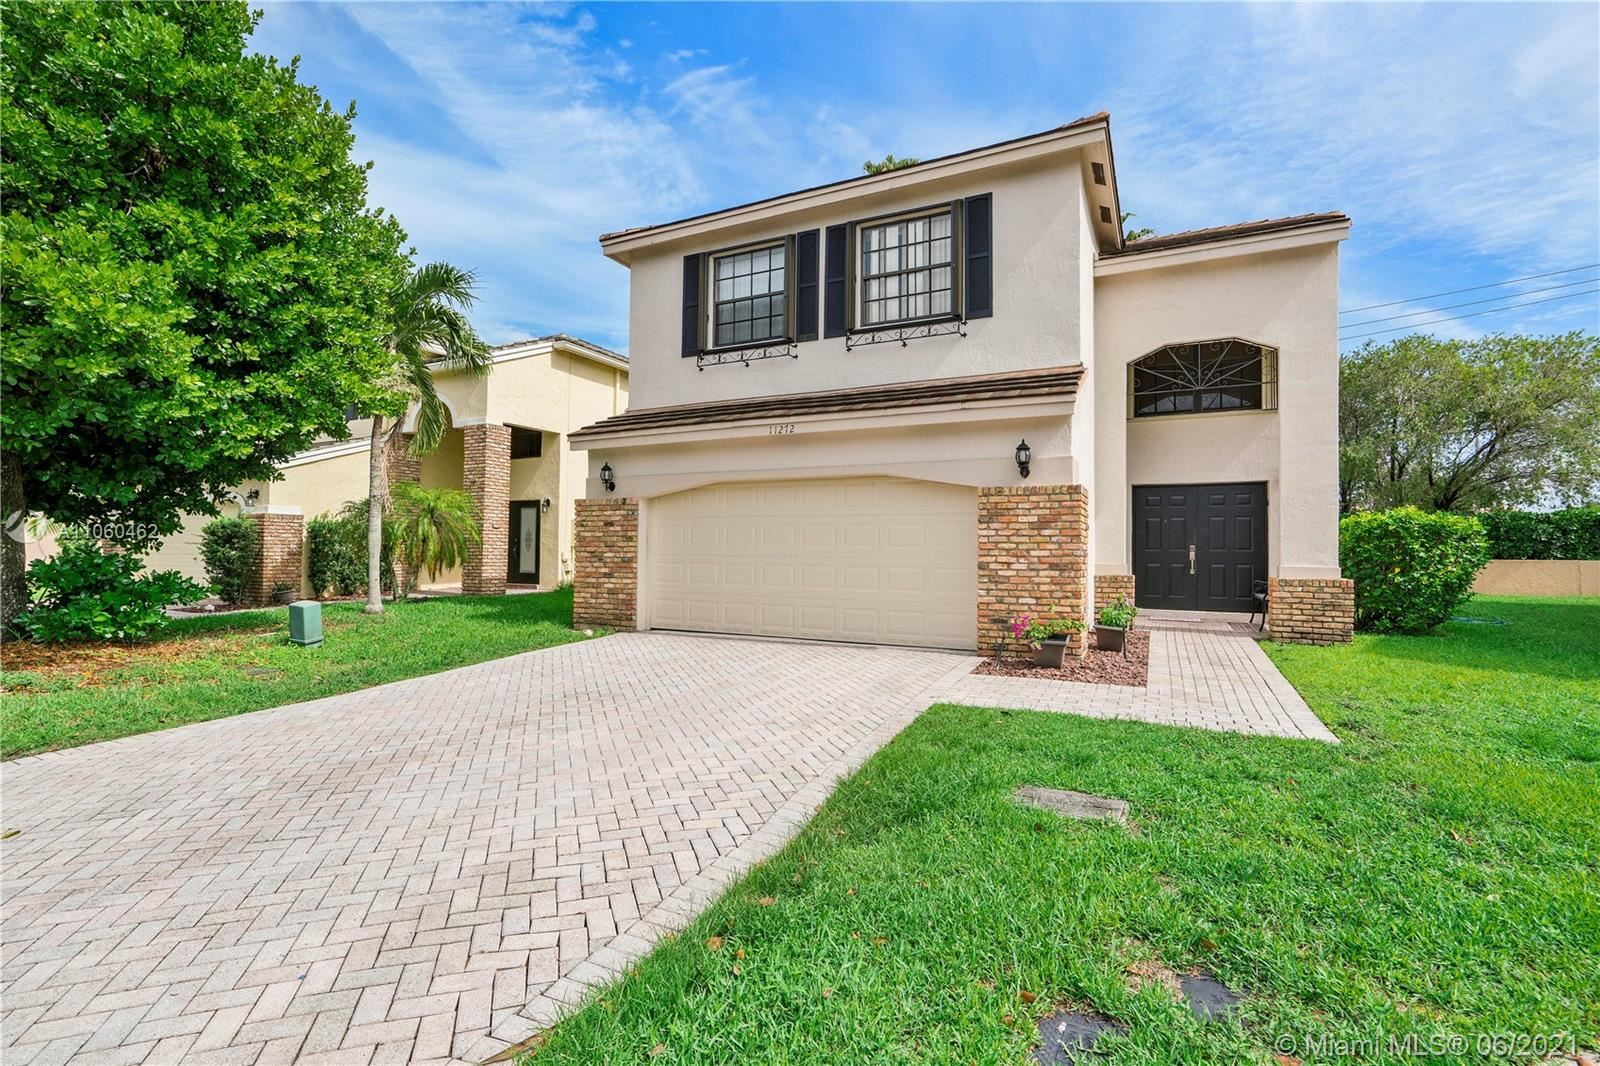 11272 NW 34th Ct, Coral Springs, FL 33065 - #: A11060462